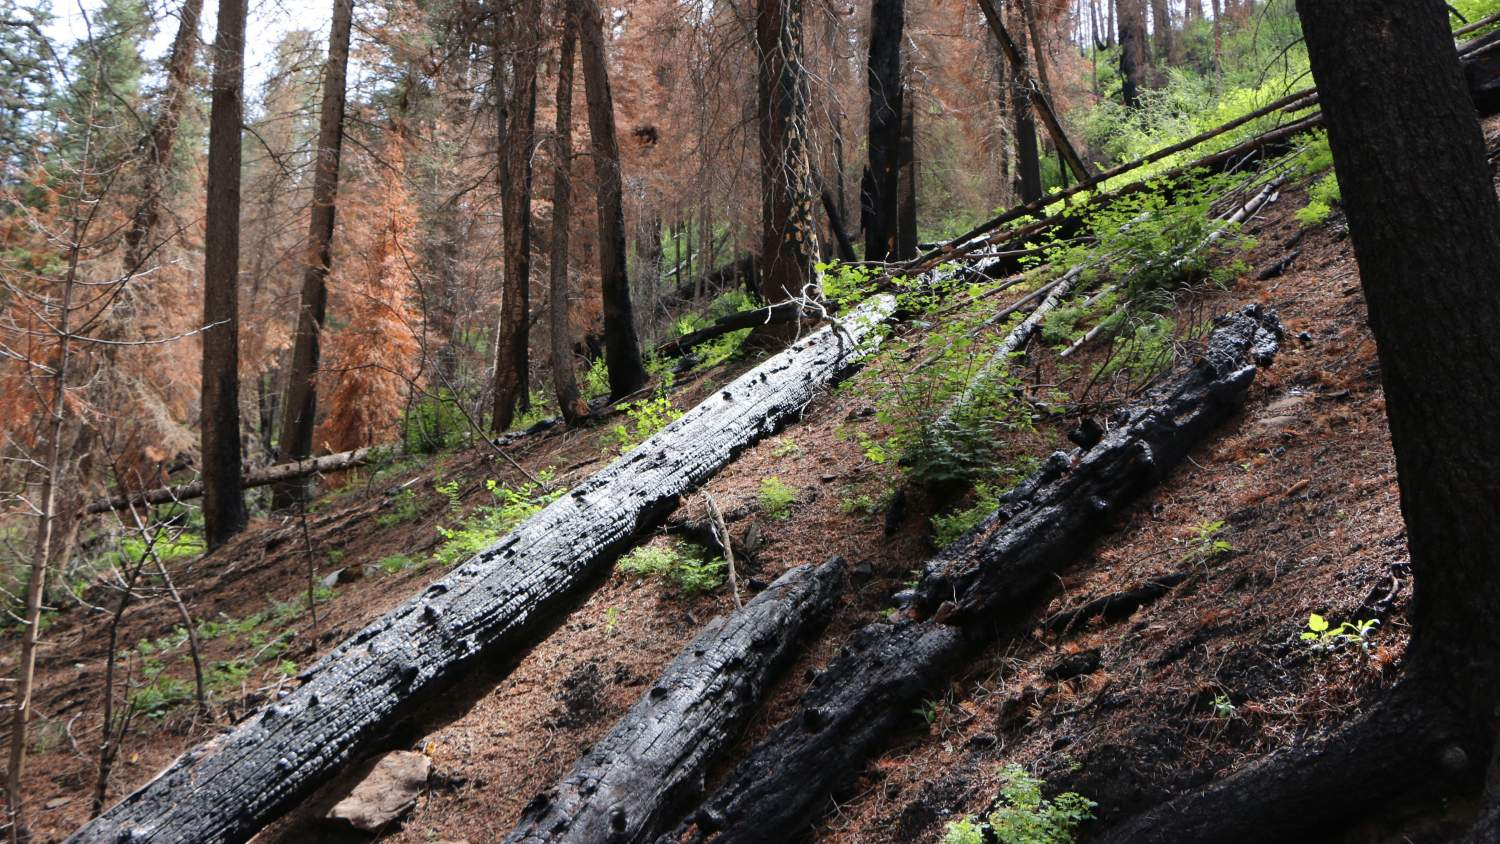 Scorched trees in southwestern Colorado